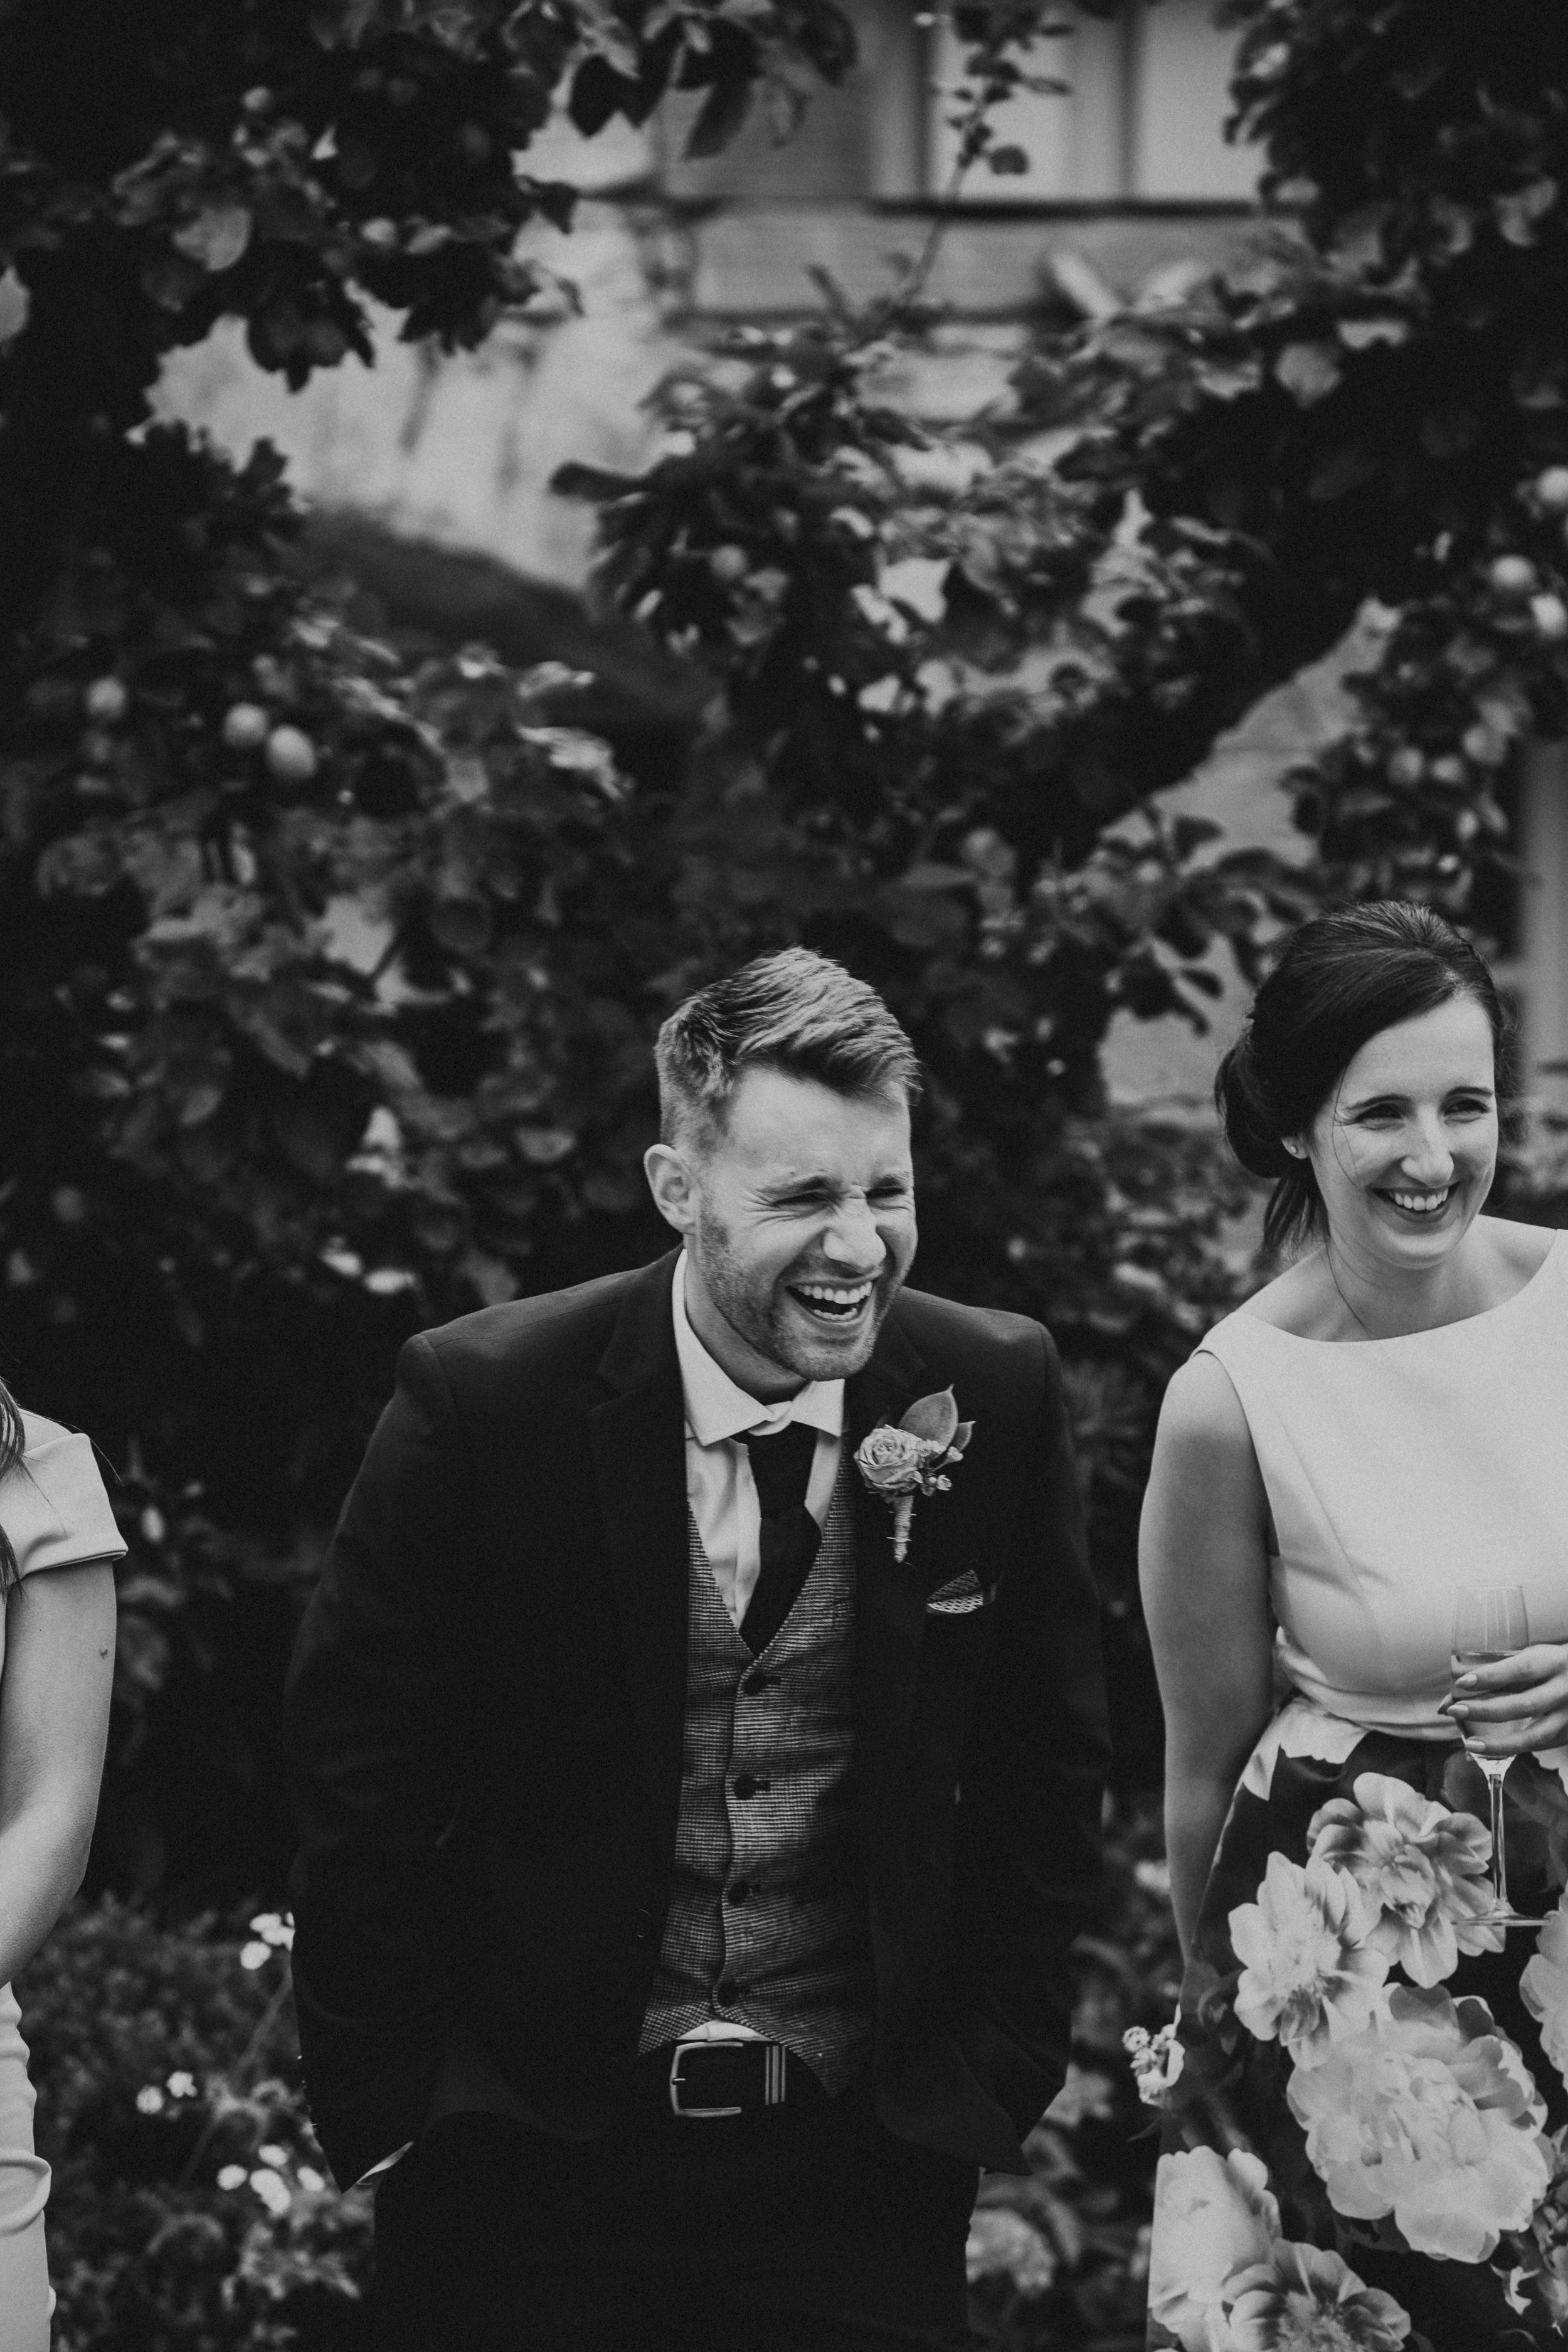 PJ_PHILLIPS_PHOTOGRAPHY_EDINBURGH_WEDDERBURN_BARNS_WEDDING_EDINBURGH_WEDDING_PHOTOGRAPHER_118.jpg